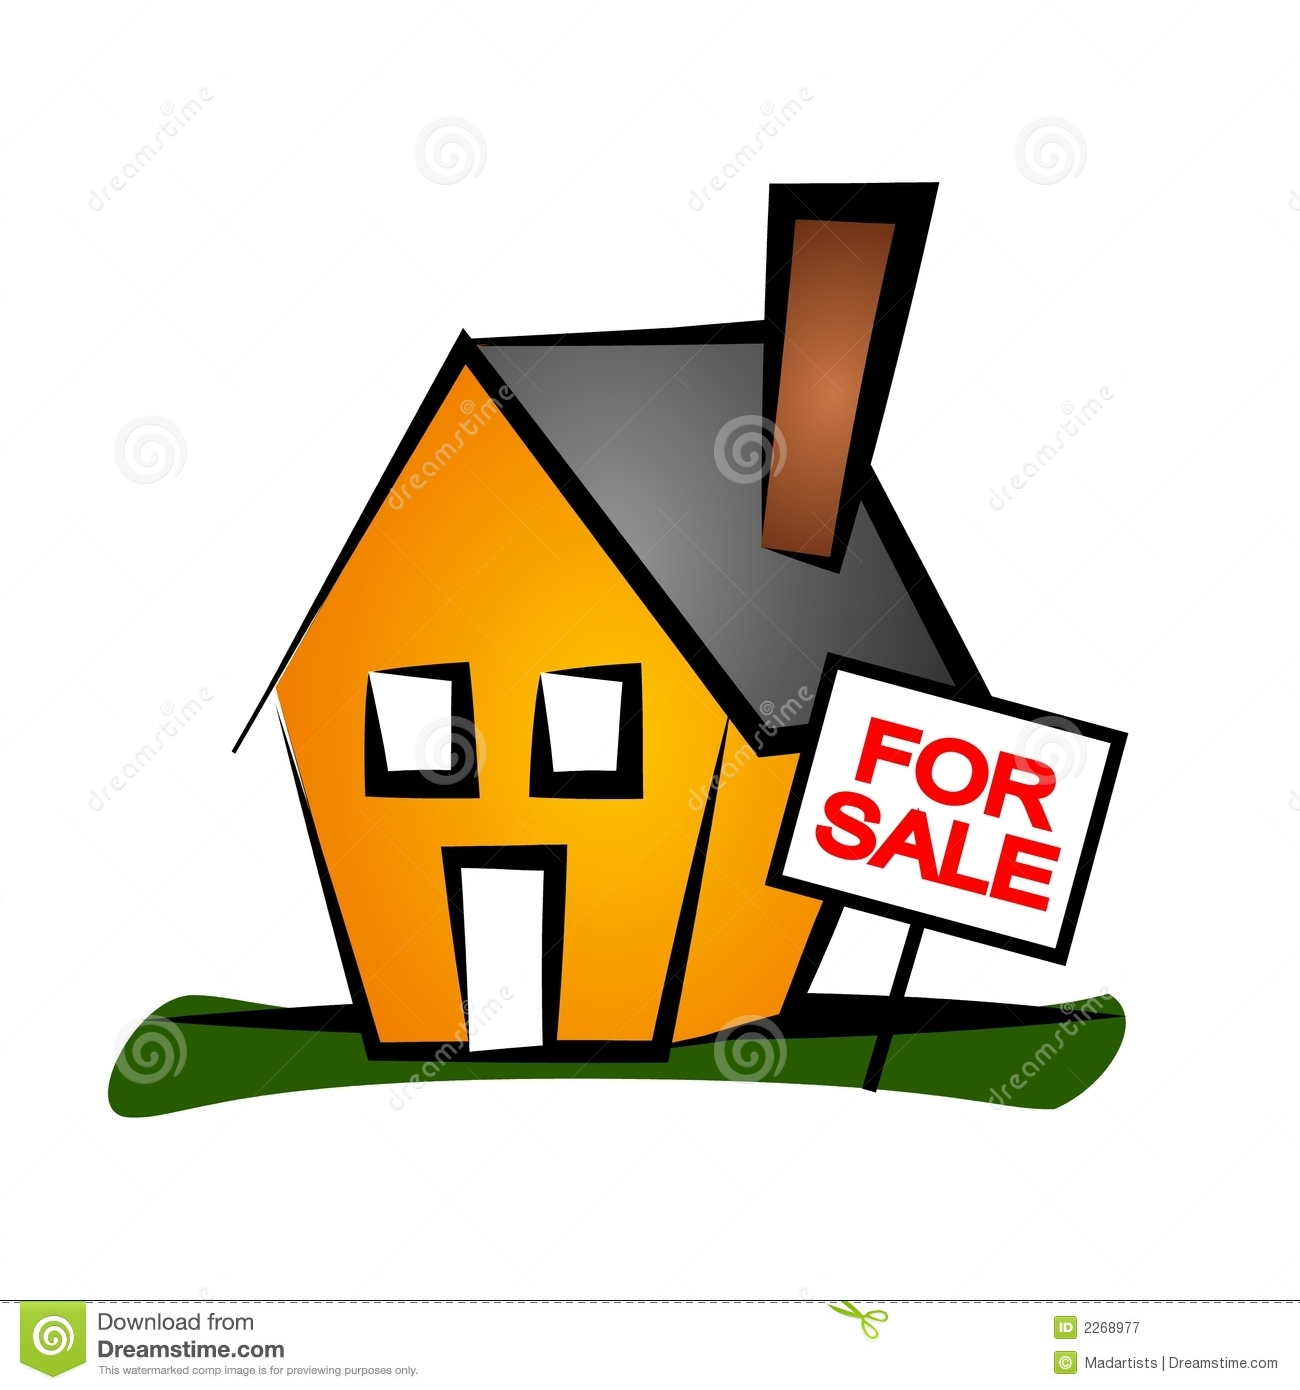 Real Estate Clip Art House 1 Royalty Free Stock Photography.